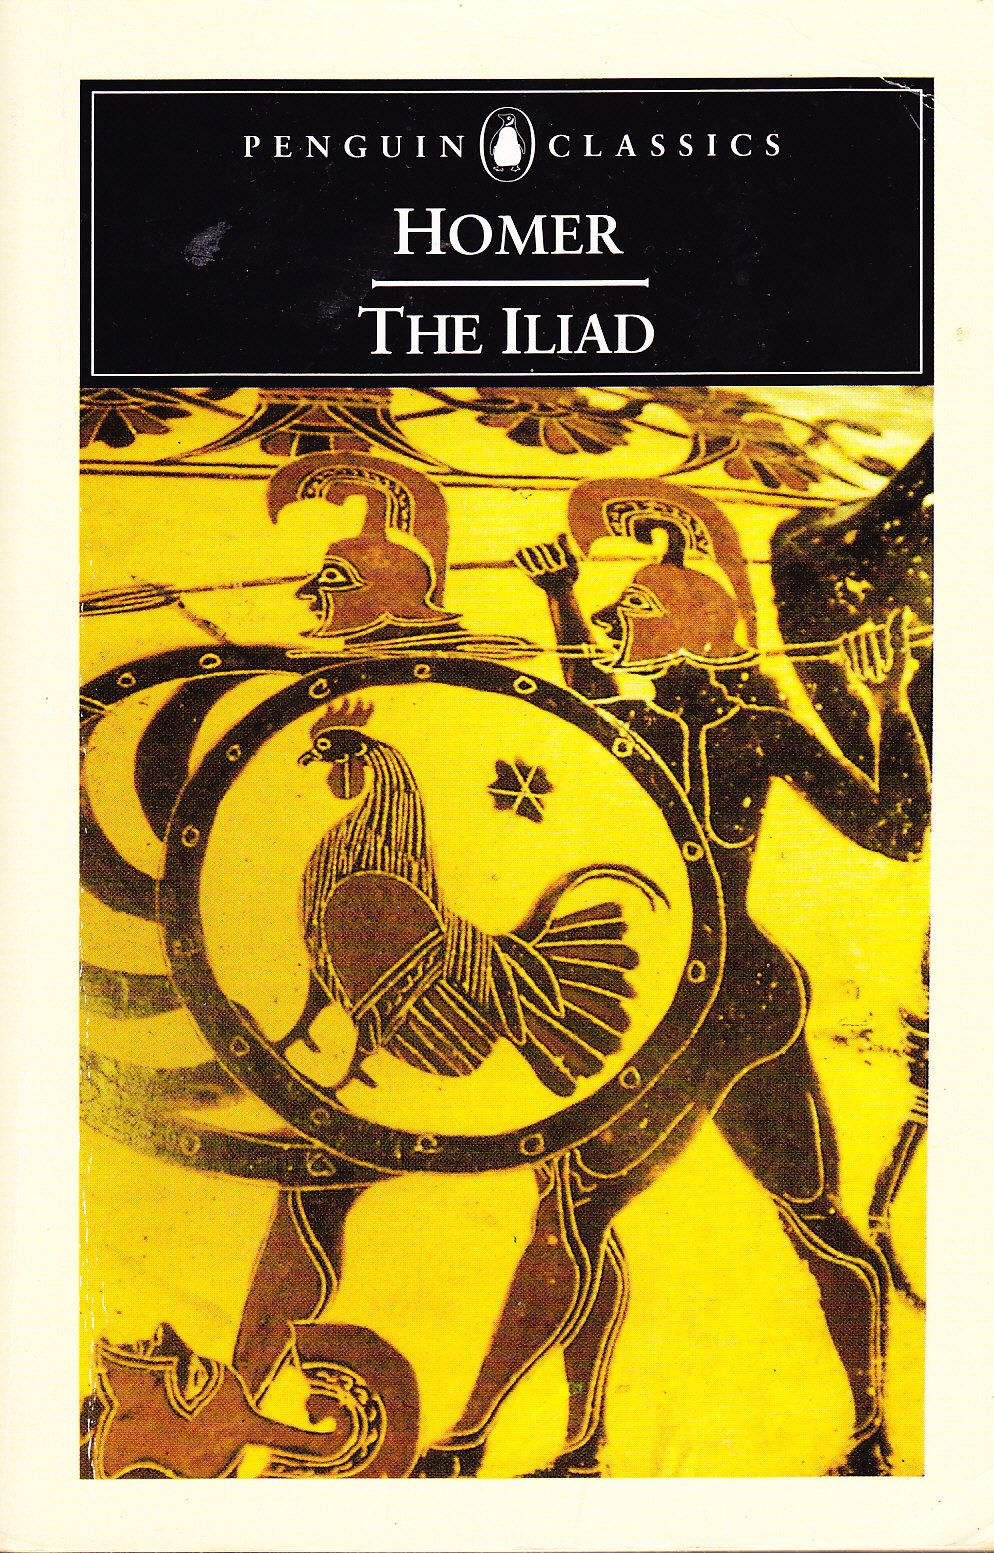 the effects of death and suffering in homers the iliad Homer's iliad, the earliest greek poem, narrates the archetypal war between 'europeans' and 'asiatics' divided by the hellespont looking at wolfgang peterson's blockbuster troy (2004), the lecture describes the genesis of the iliad between the mycenaean late bronze age and the 8th.